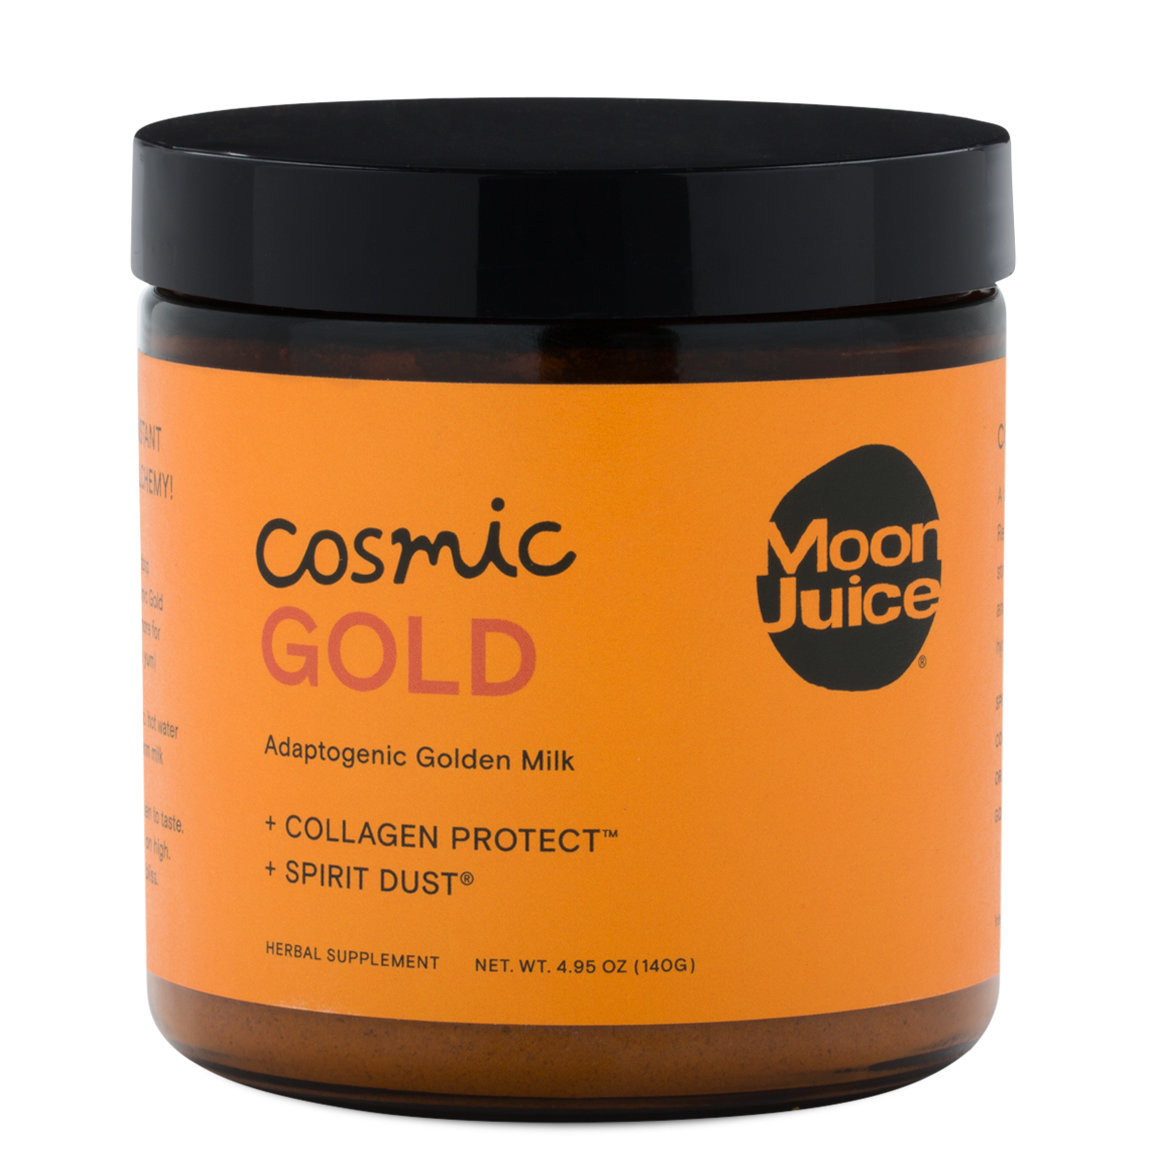 Moon Juice Cosmic Gold product swatch.